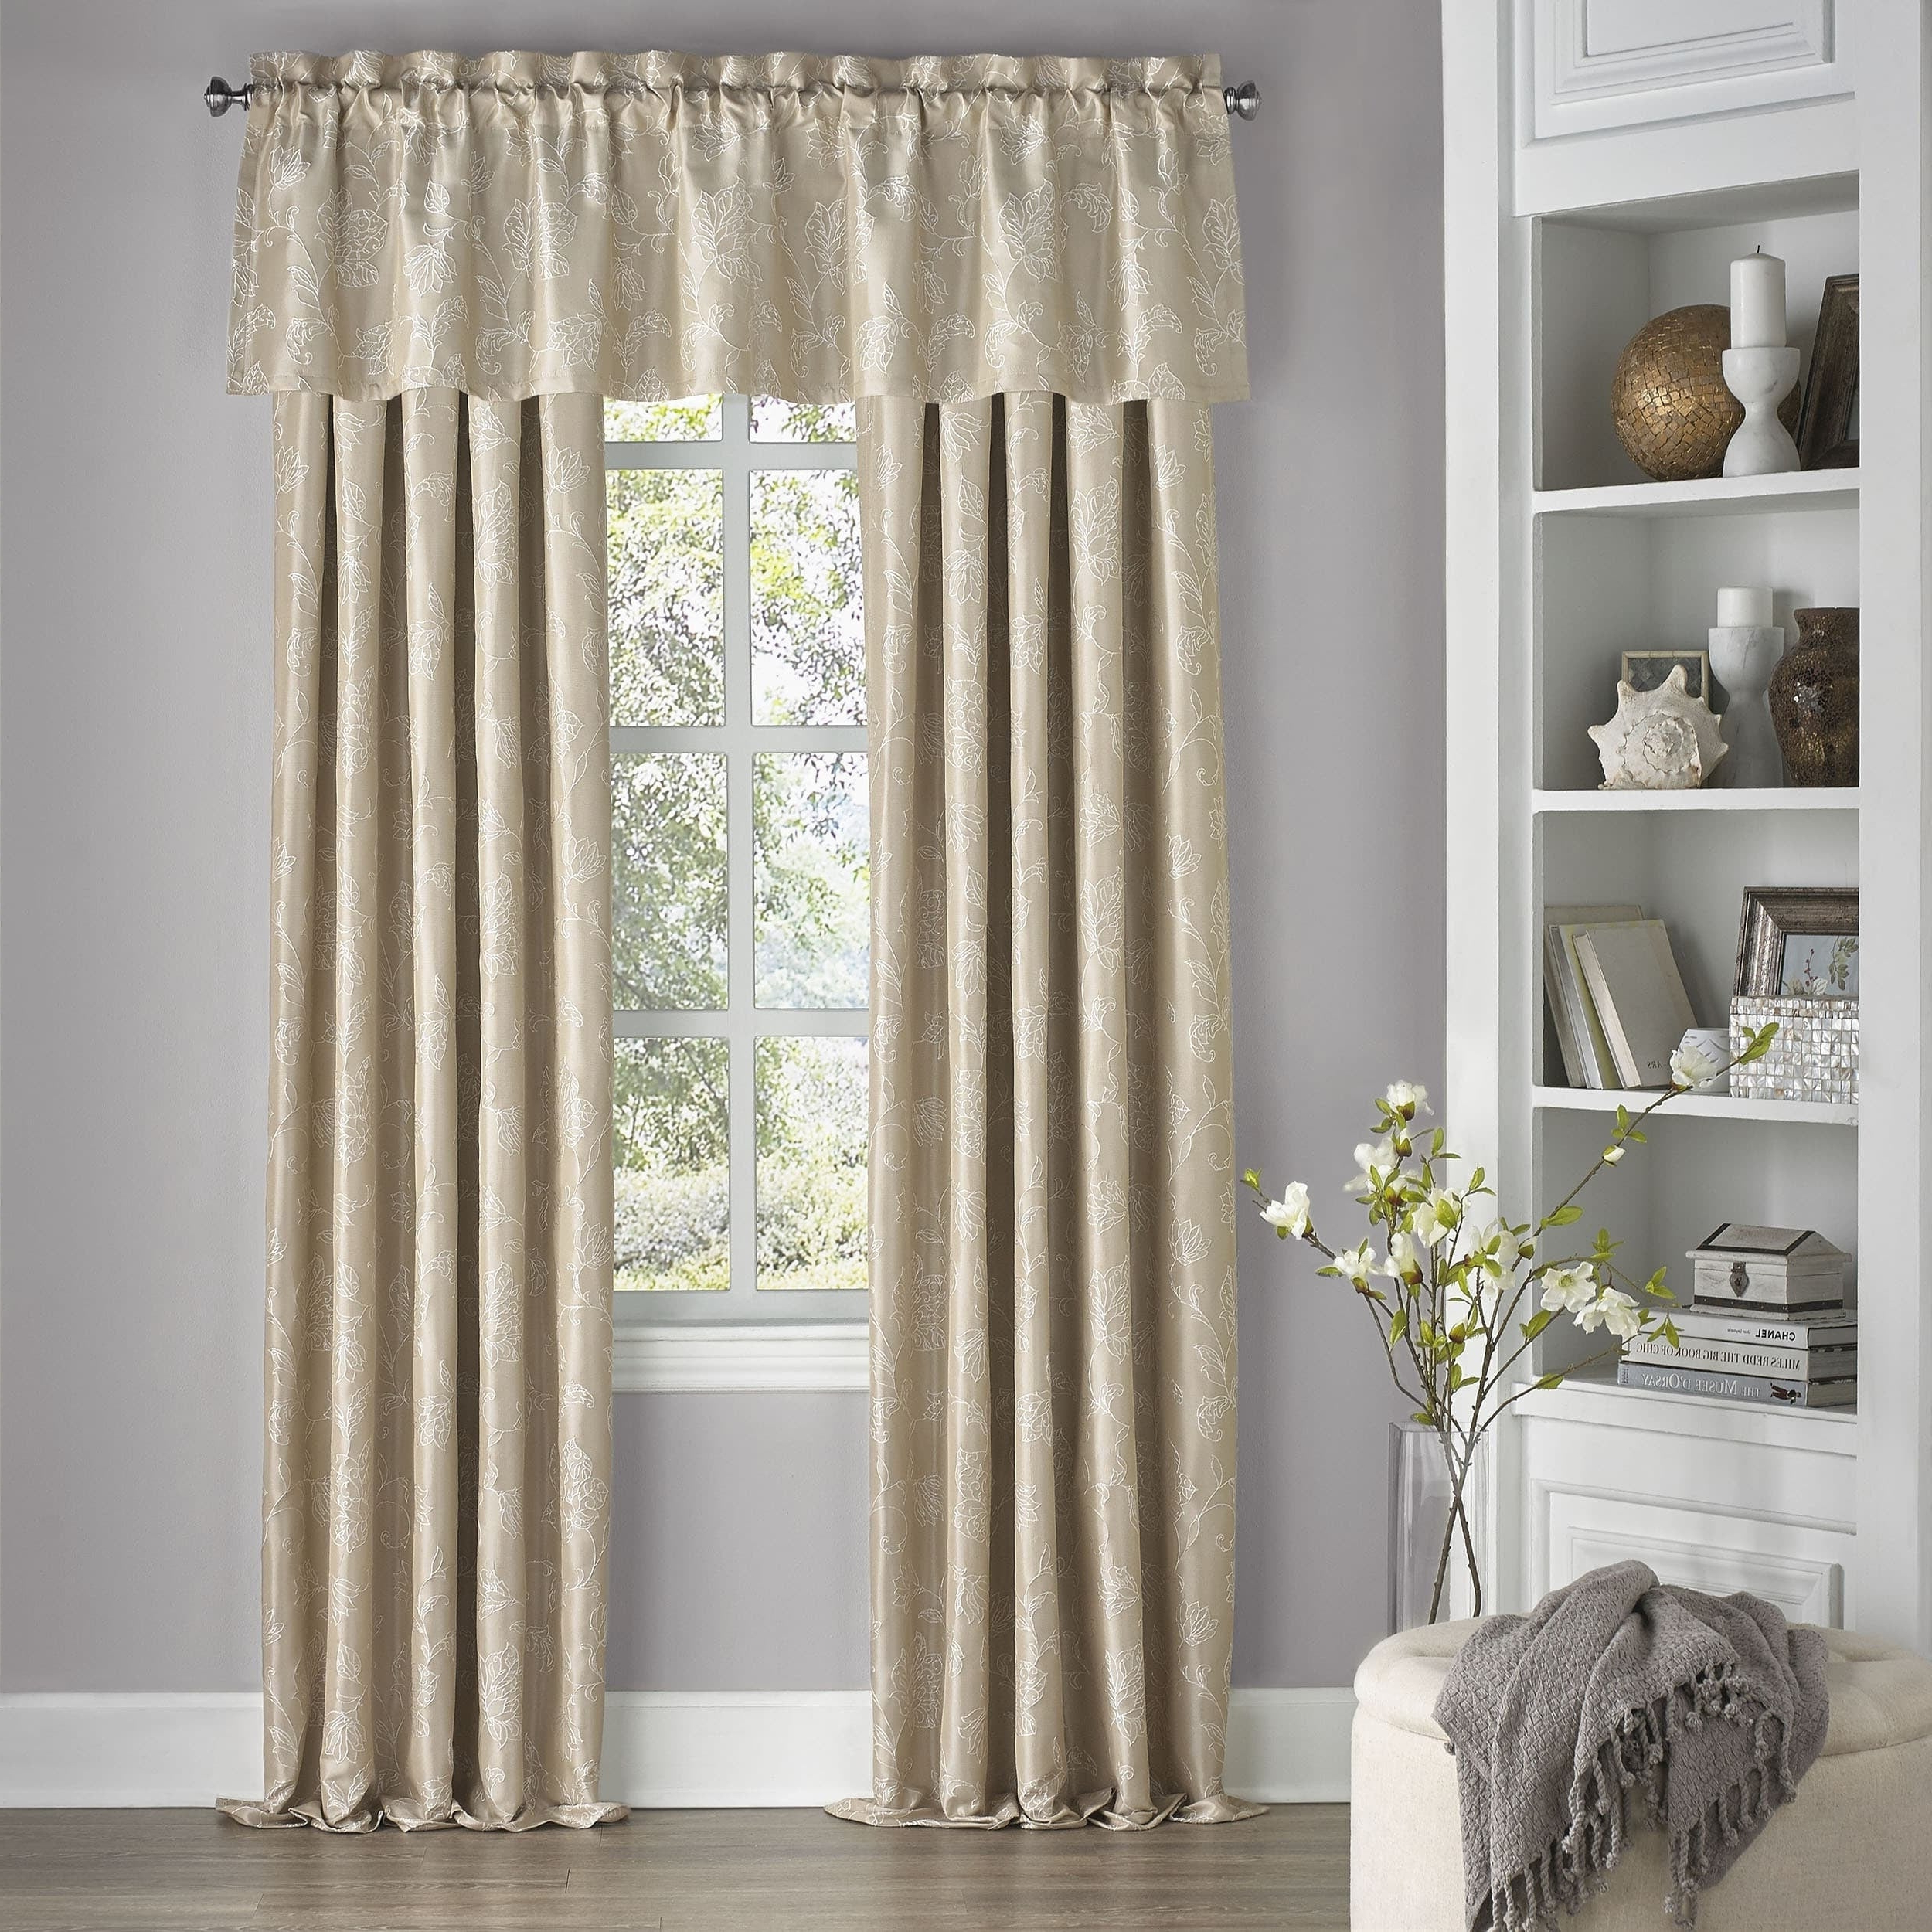 Eclipse Corinne Thermaback Curtain Panels Throughout Best And Newest Eclipse Mallory Floral Blackout Window Curtain Panel (View 16 of 20)